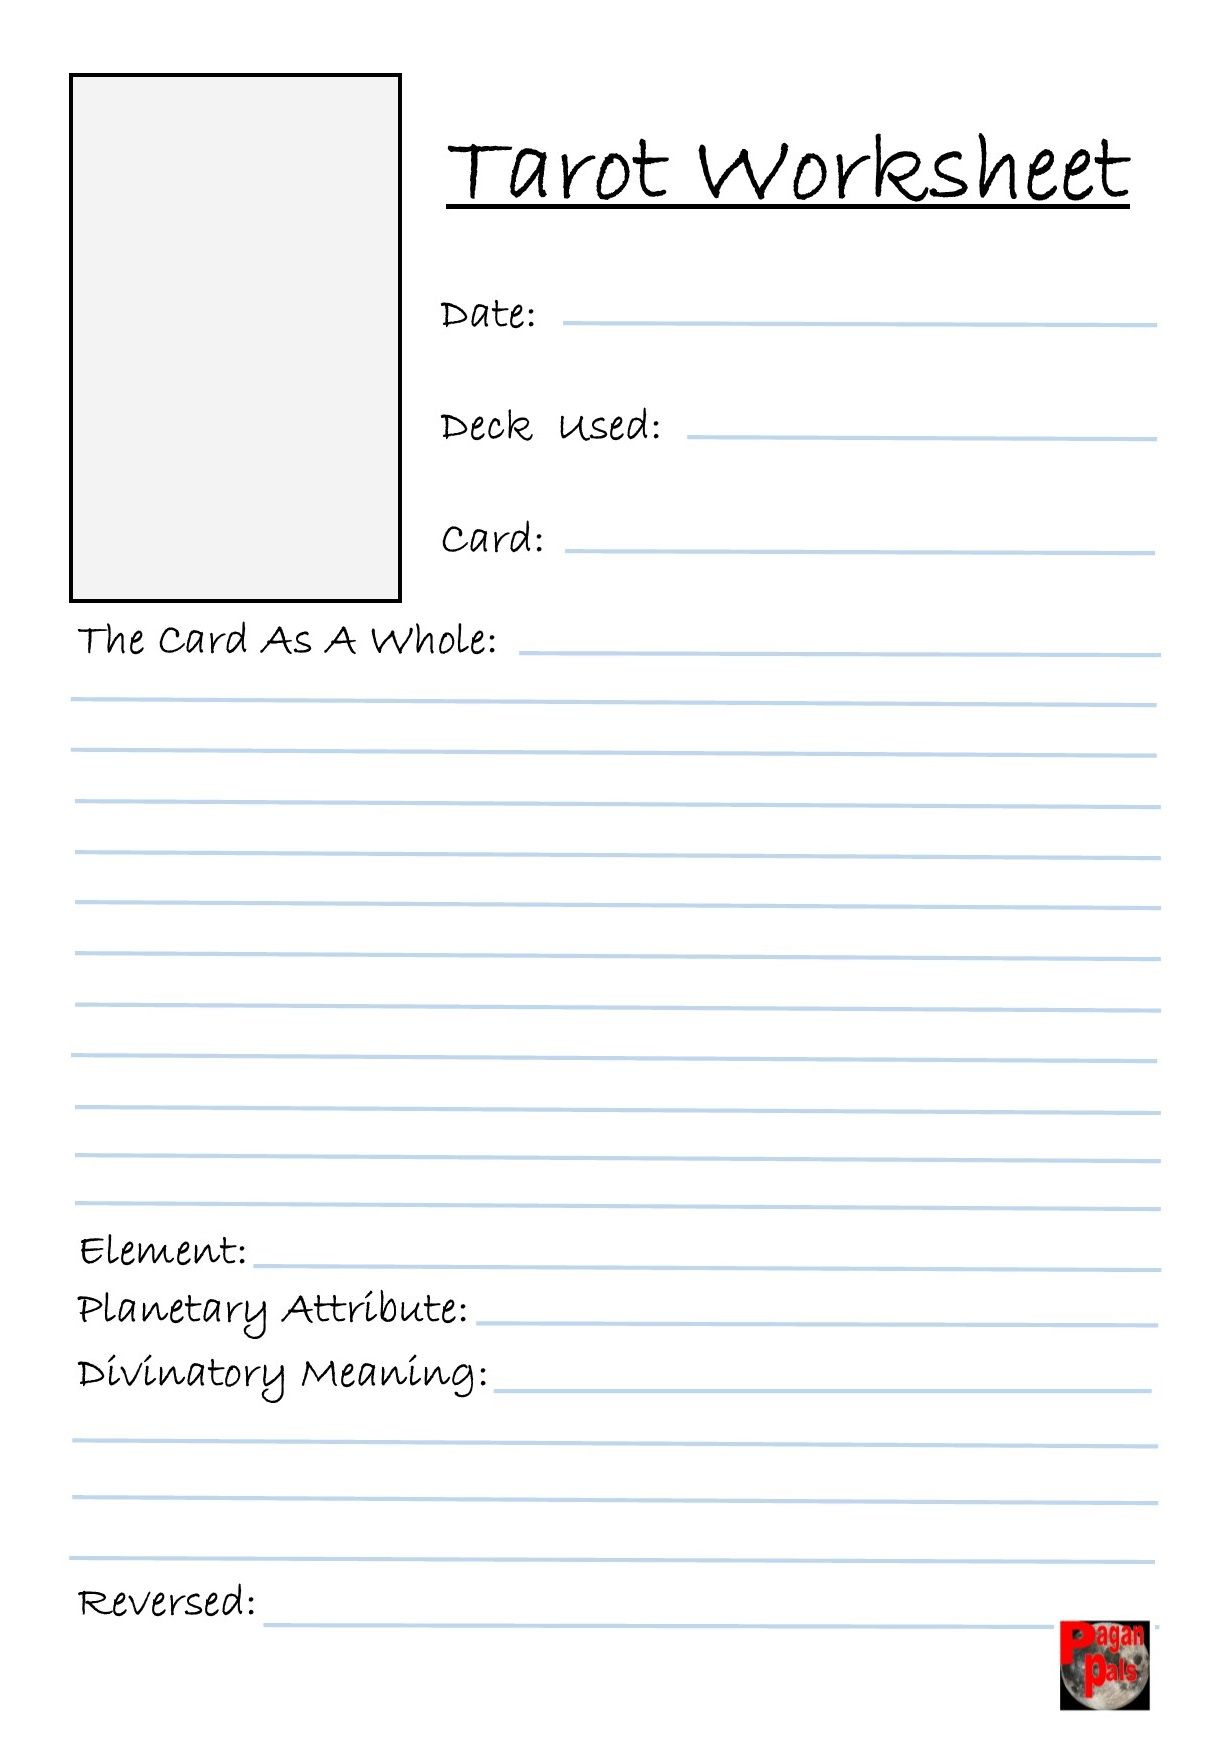 Intrepid image with free printable tarot journal